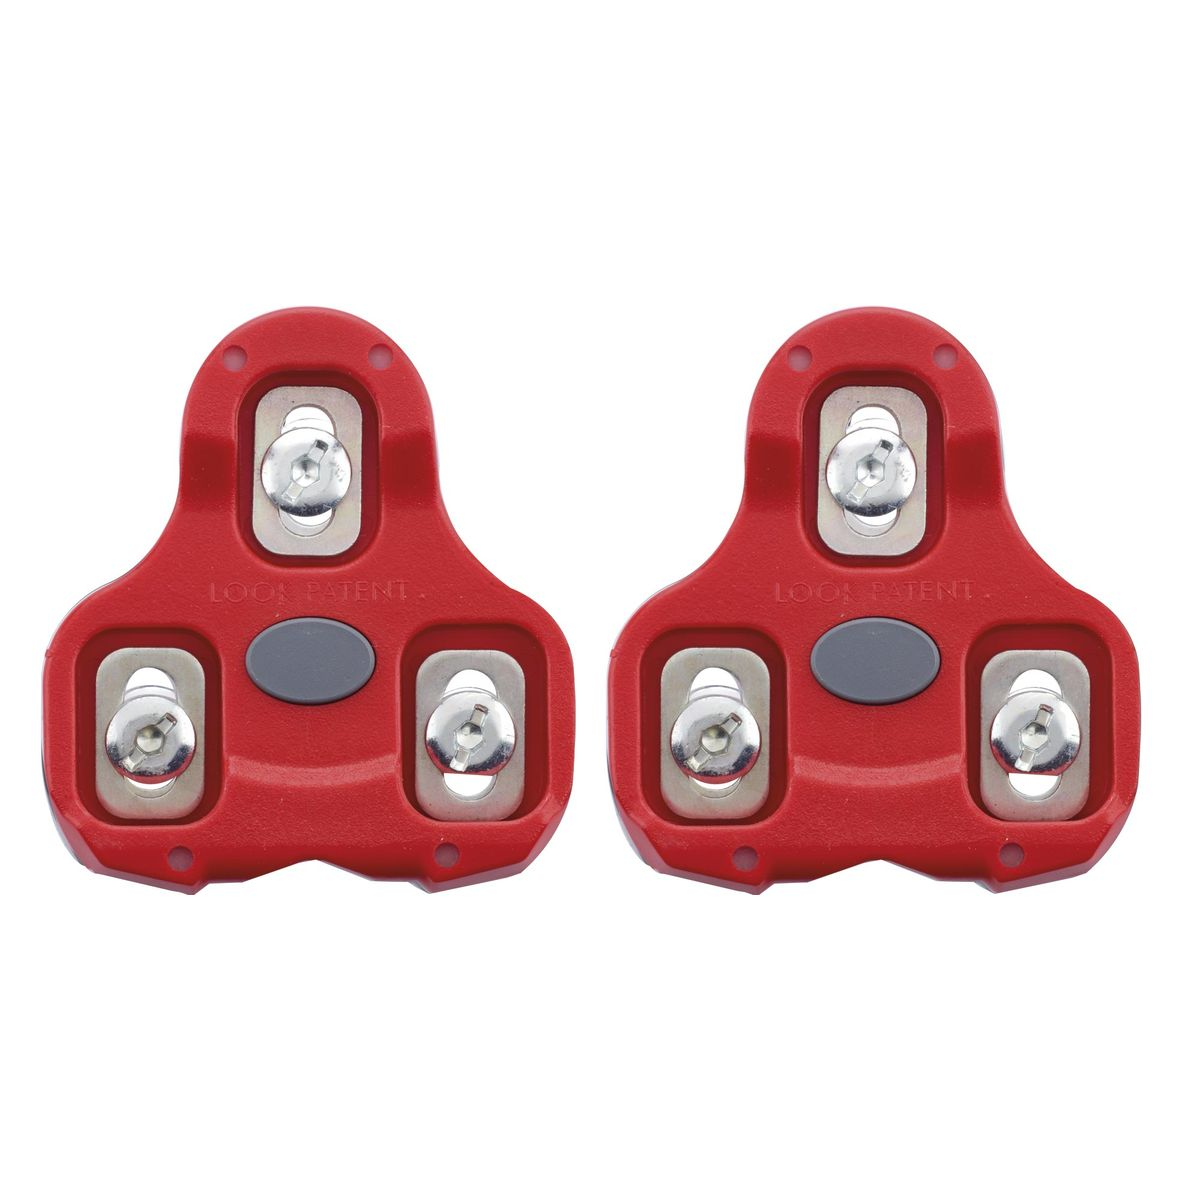 Look kéo klamper sort | Pedal cleats